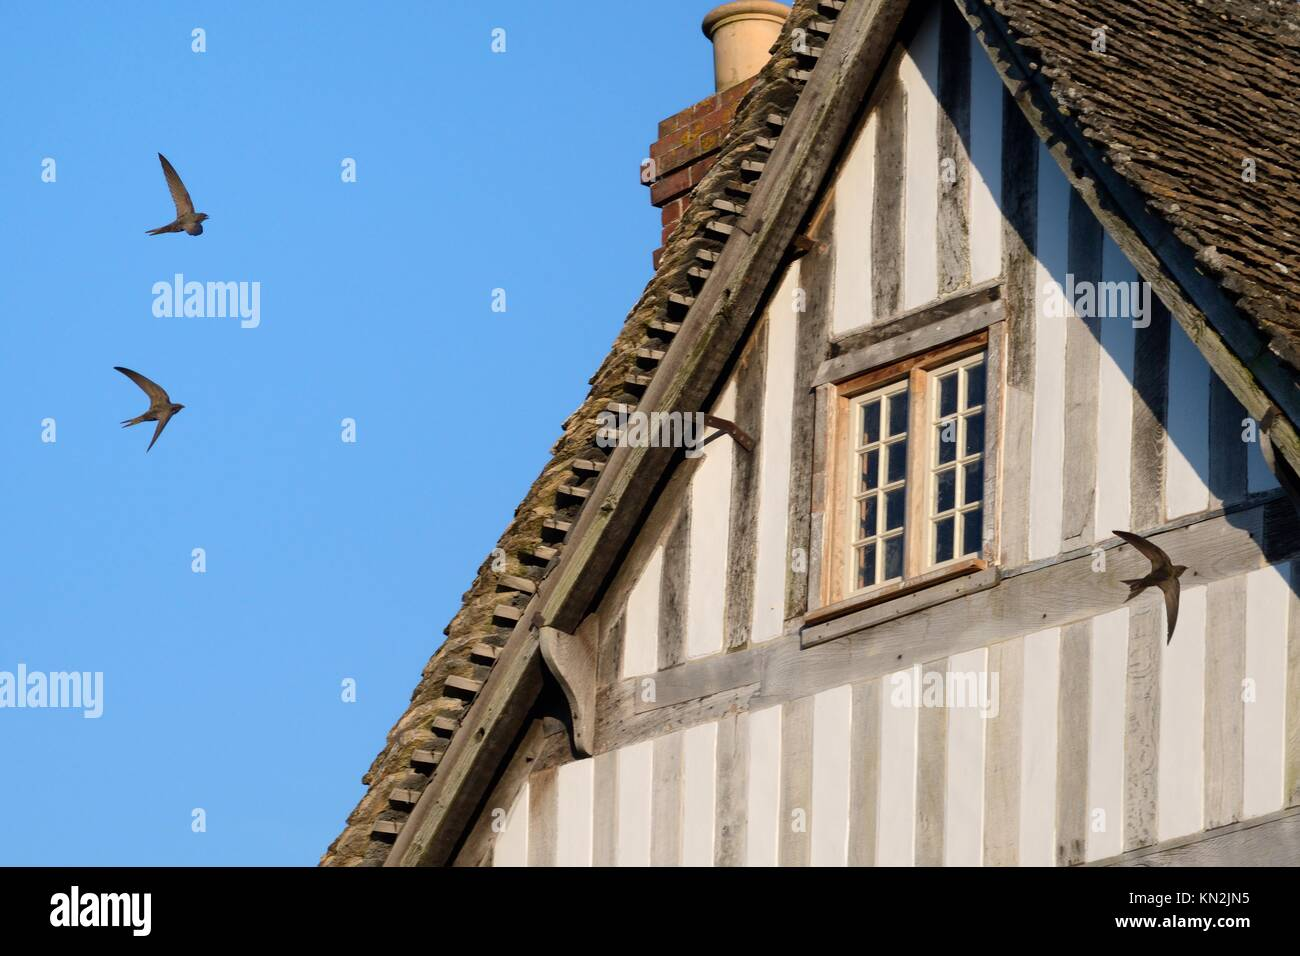 Common swift (Apus apus) group flying and screaming past an old half-timbered house with several swift nests under - Stock Image